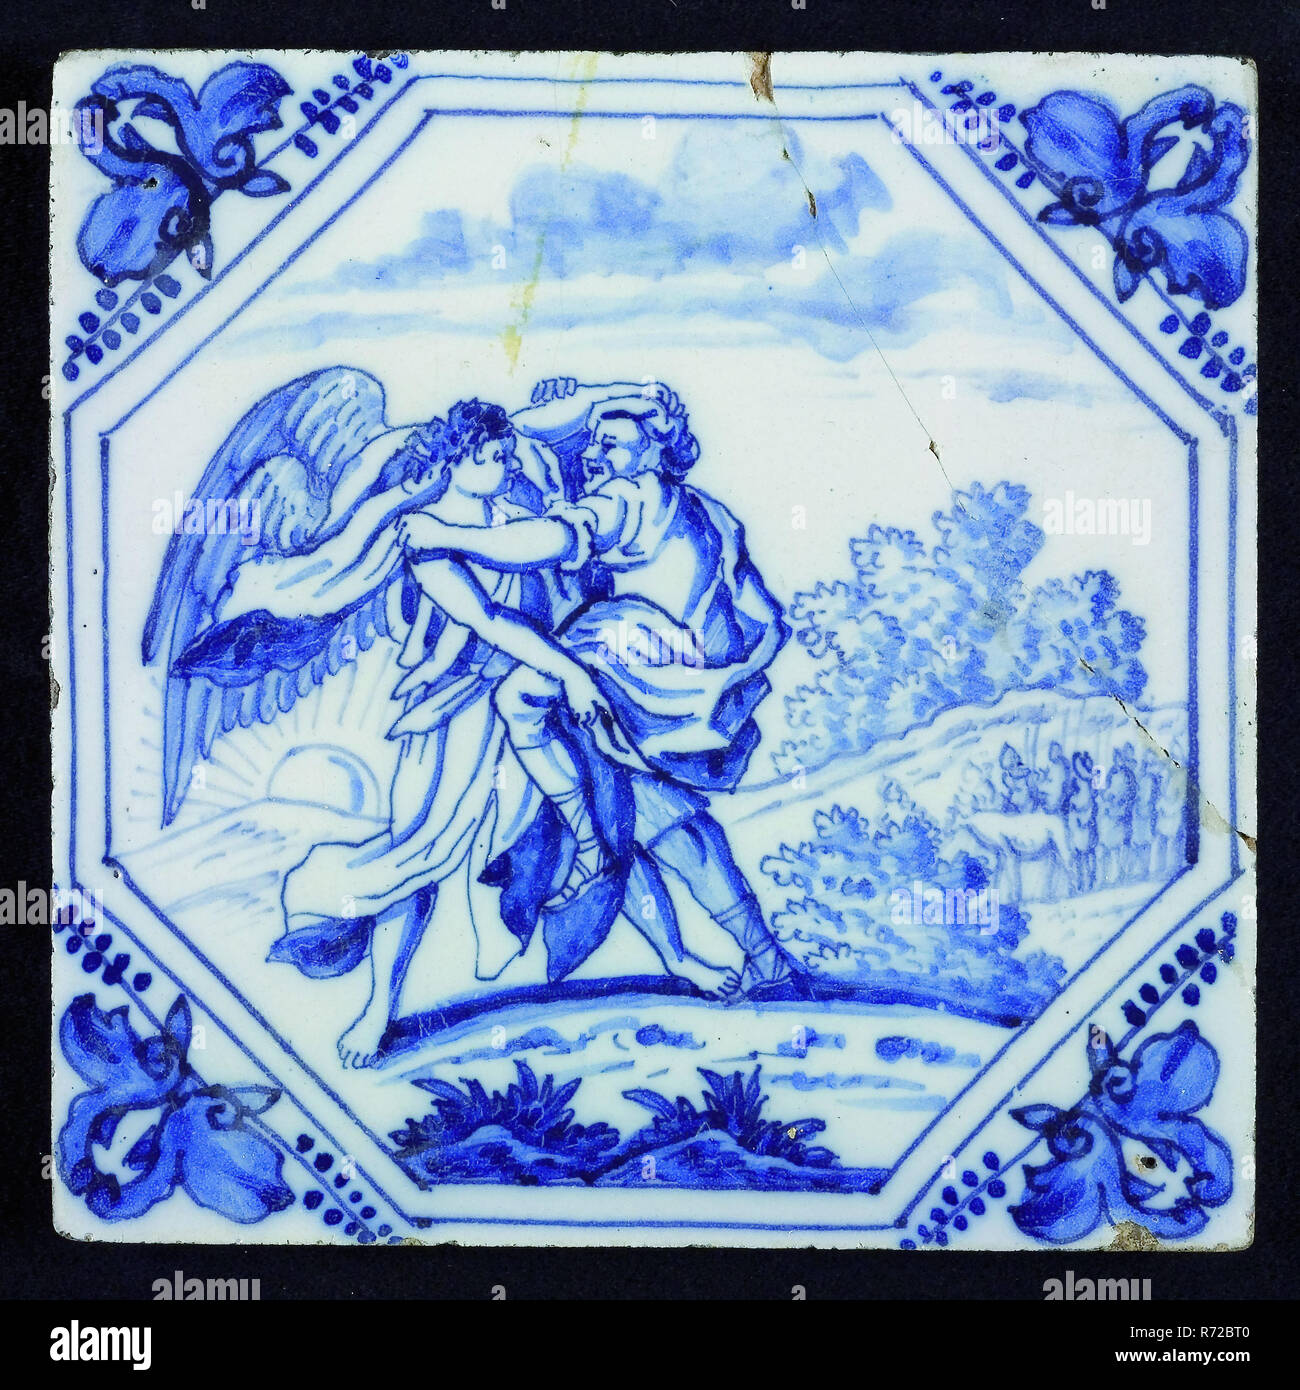 tile manufacturer: Aalmis, Scene Tile with biblical representation: Jacob wrestles with angel, wall tile tile sculpture ceramic pottery tin glaze paint, baked 2x glazed painted Square bevelled edges yellow shard two nail holes. Blue painting (cobalt paint) on white tin glaze Aalmis Aelmis bible Old Testament religion Jacob - Stock Image